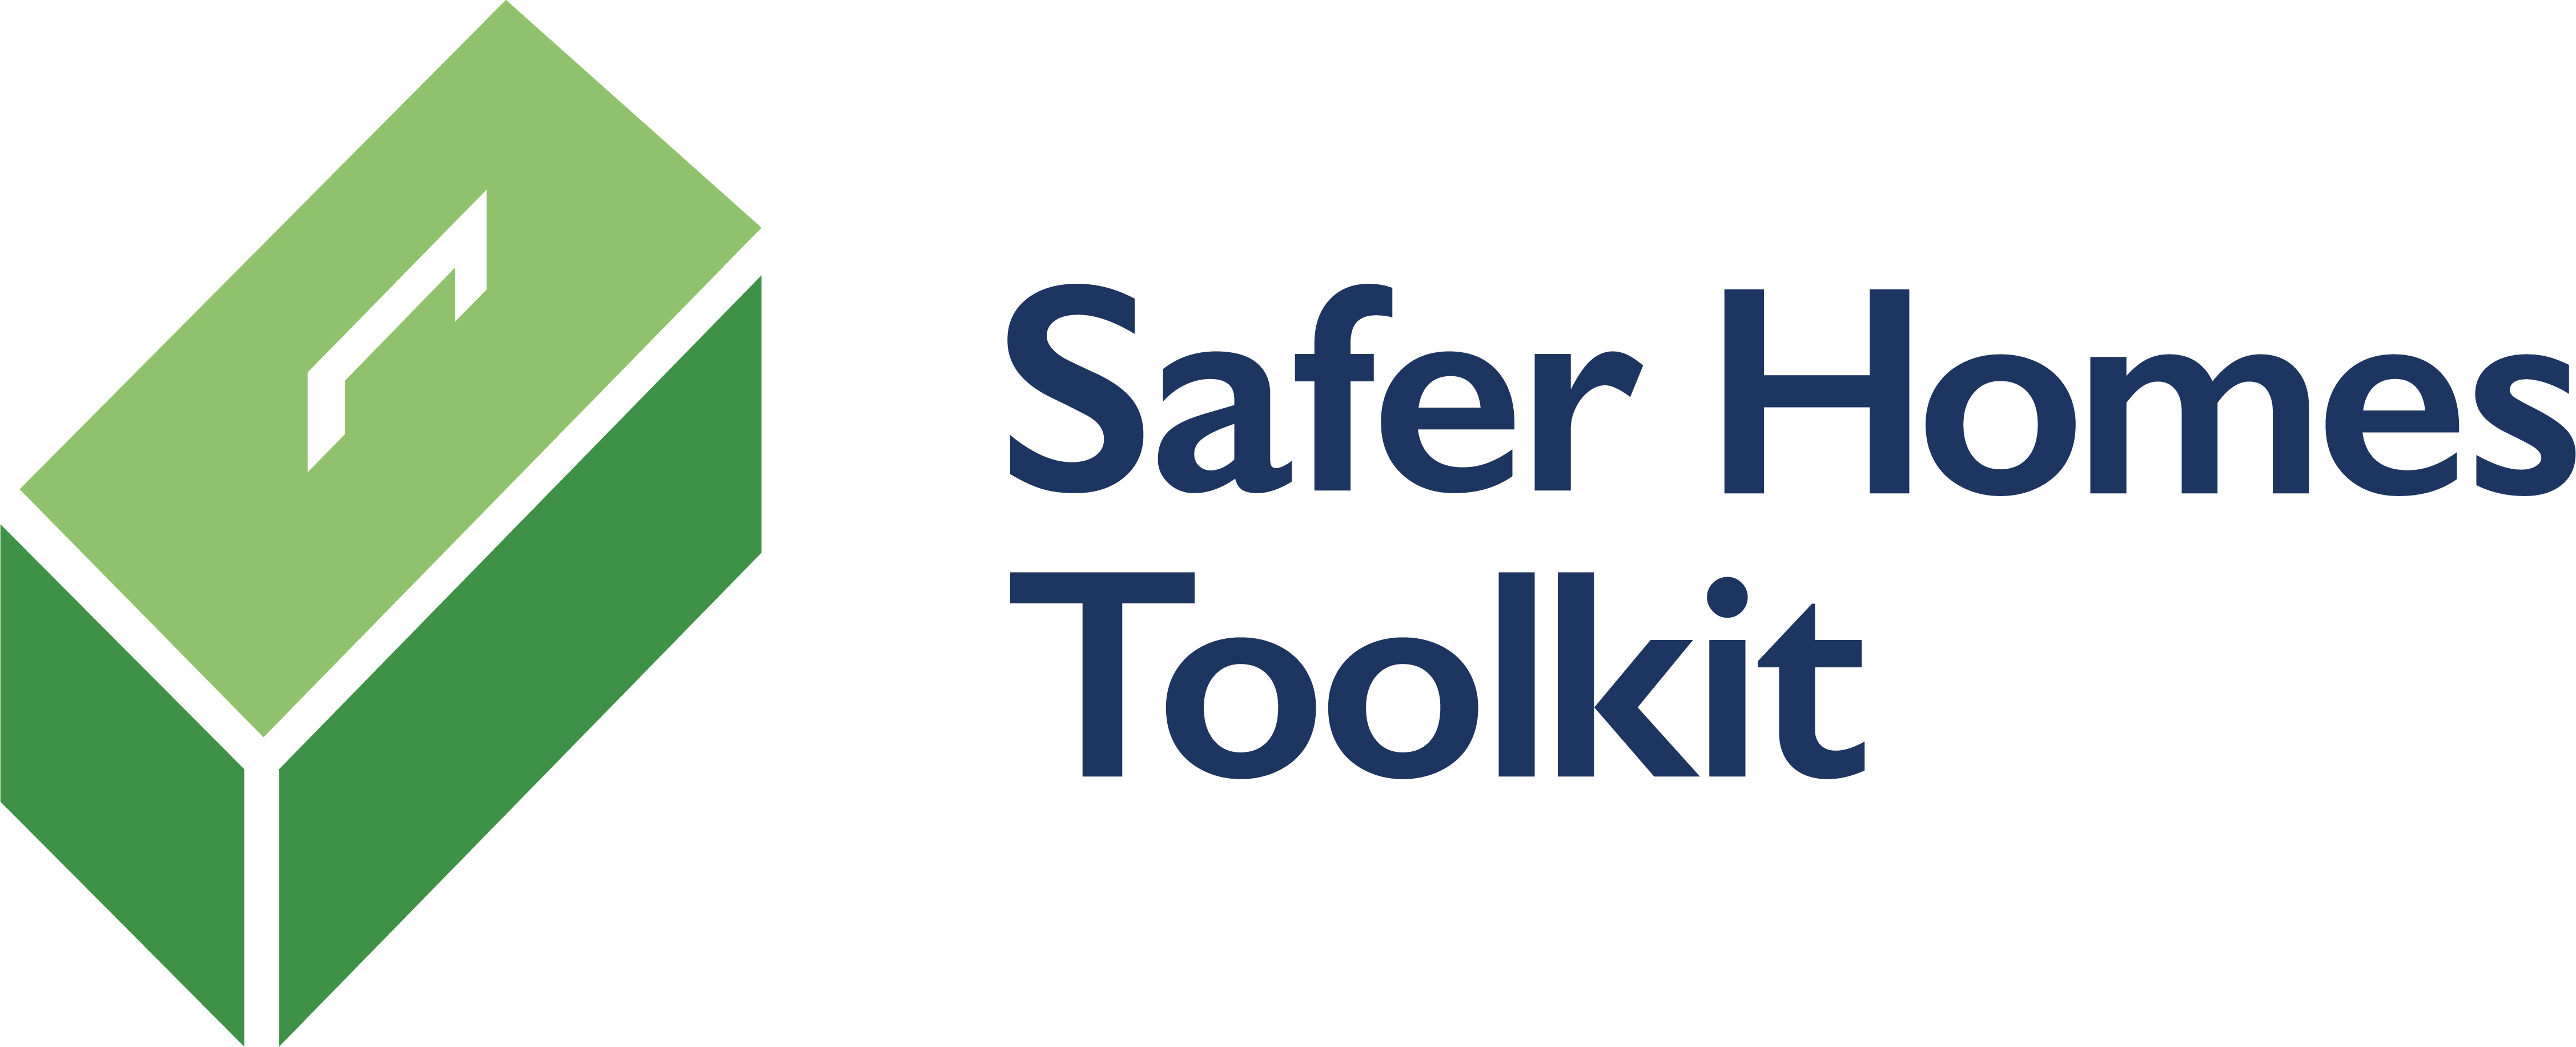 Safer Homes Toolkit Logo